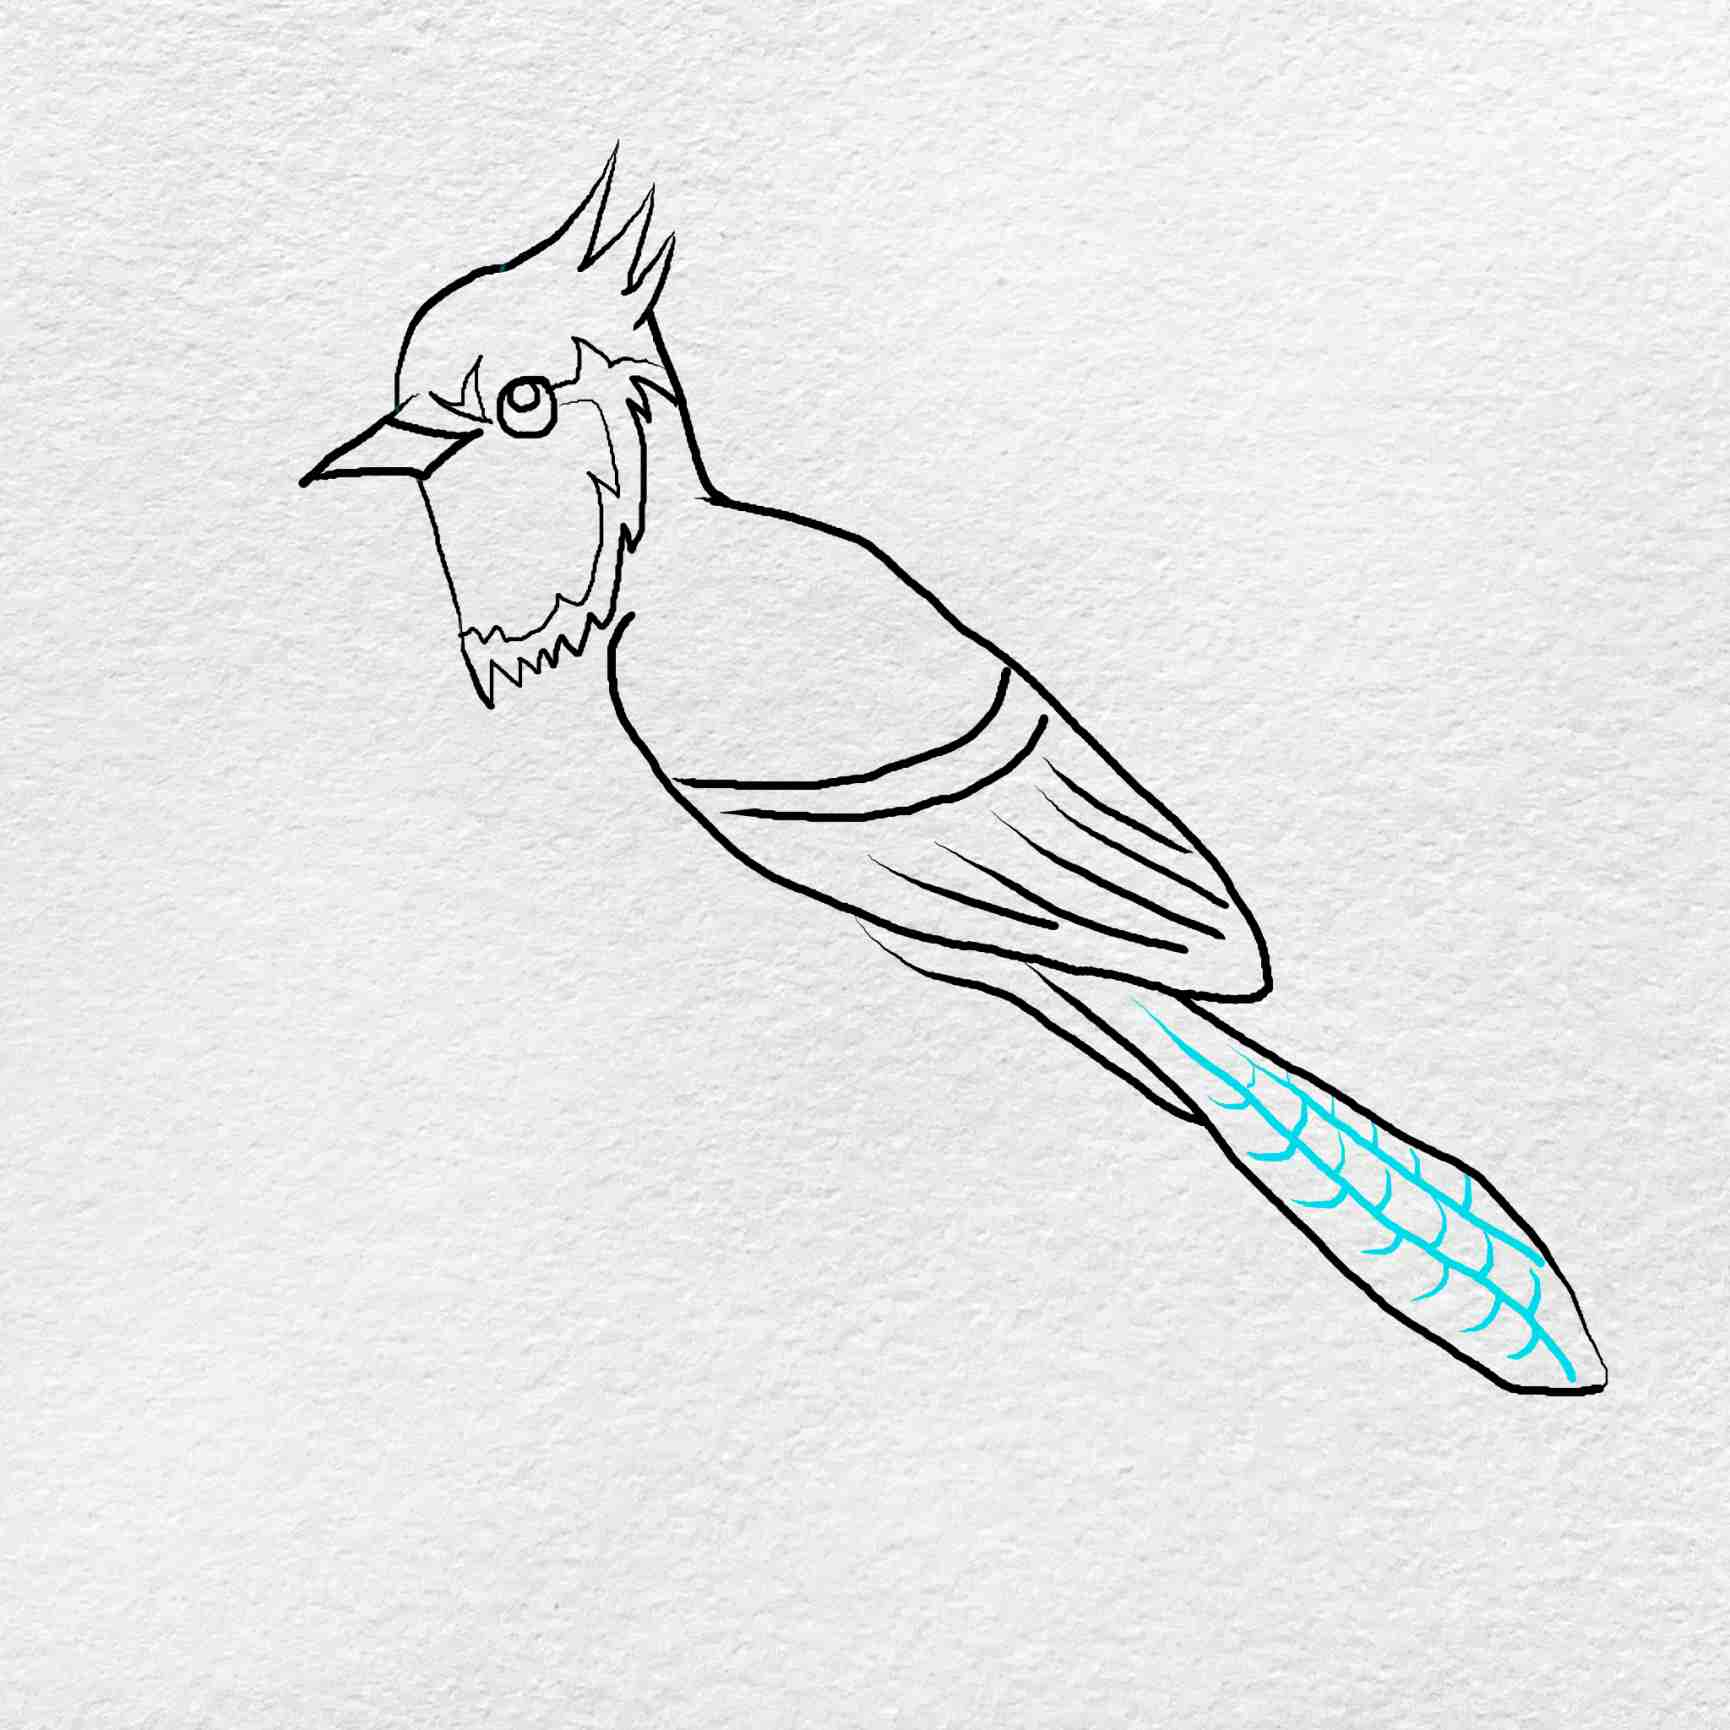 How To Draw A Blue Jay: Step 6